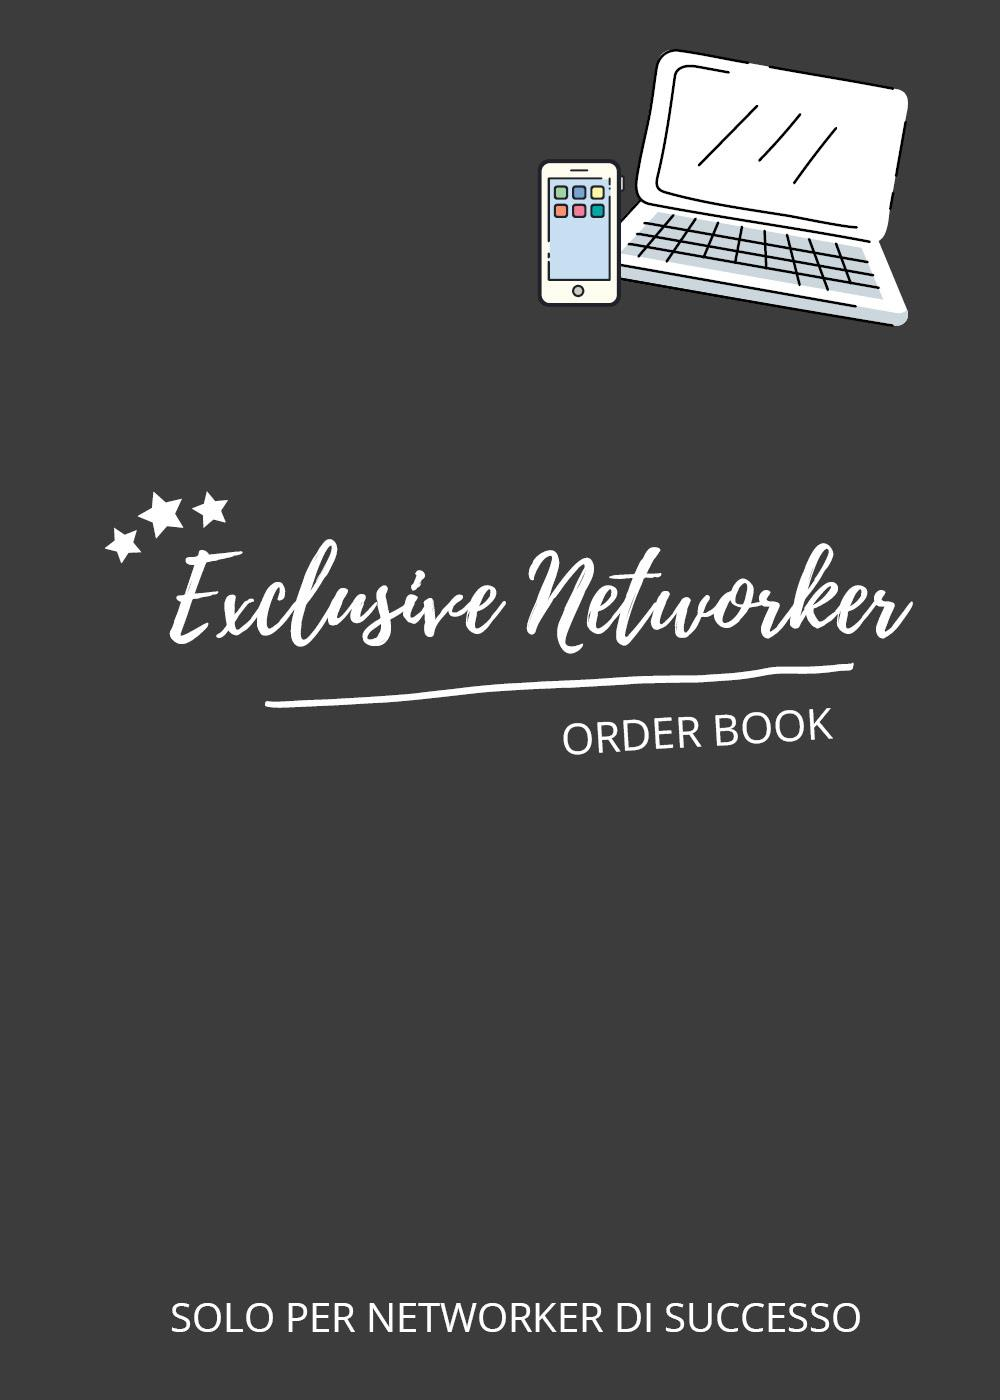 Exclusive Networker. Order Book